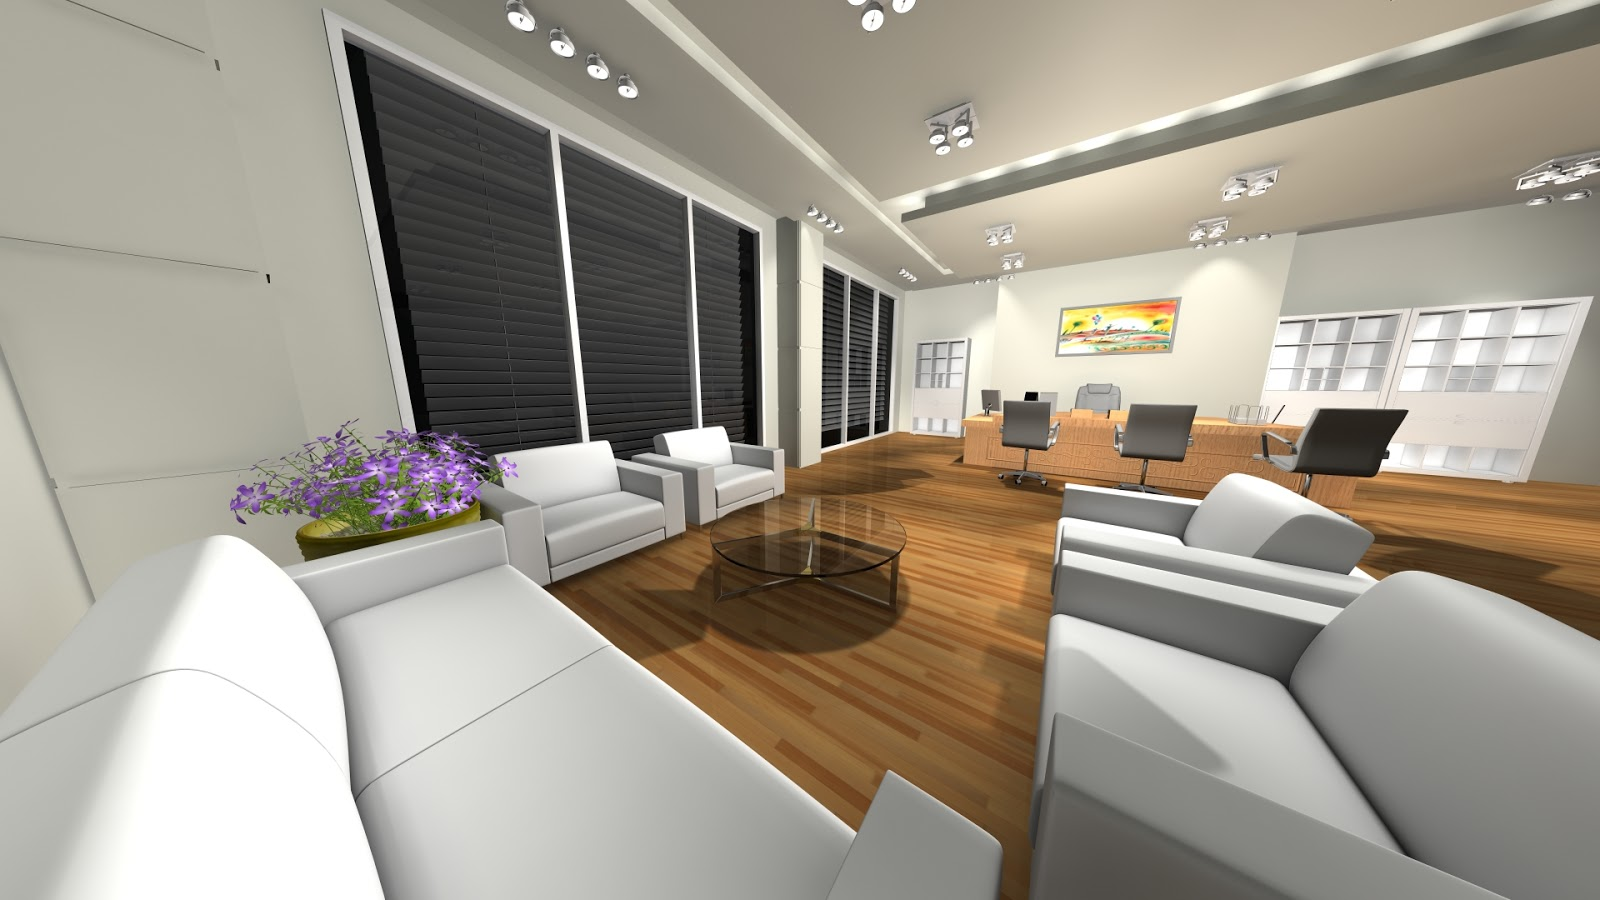 Sajid designer office room 3d interior design 3ds max for Interior desings